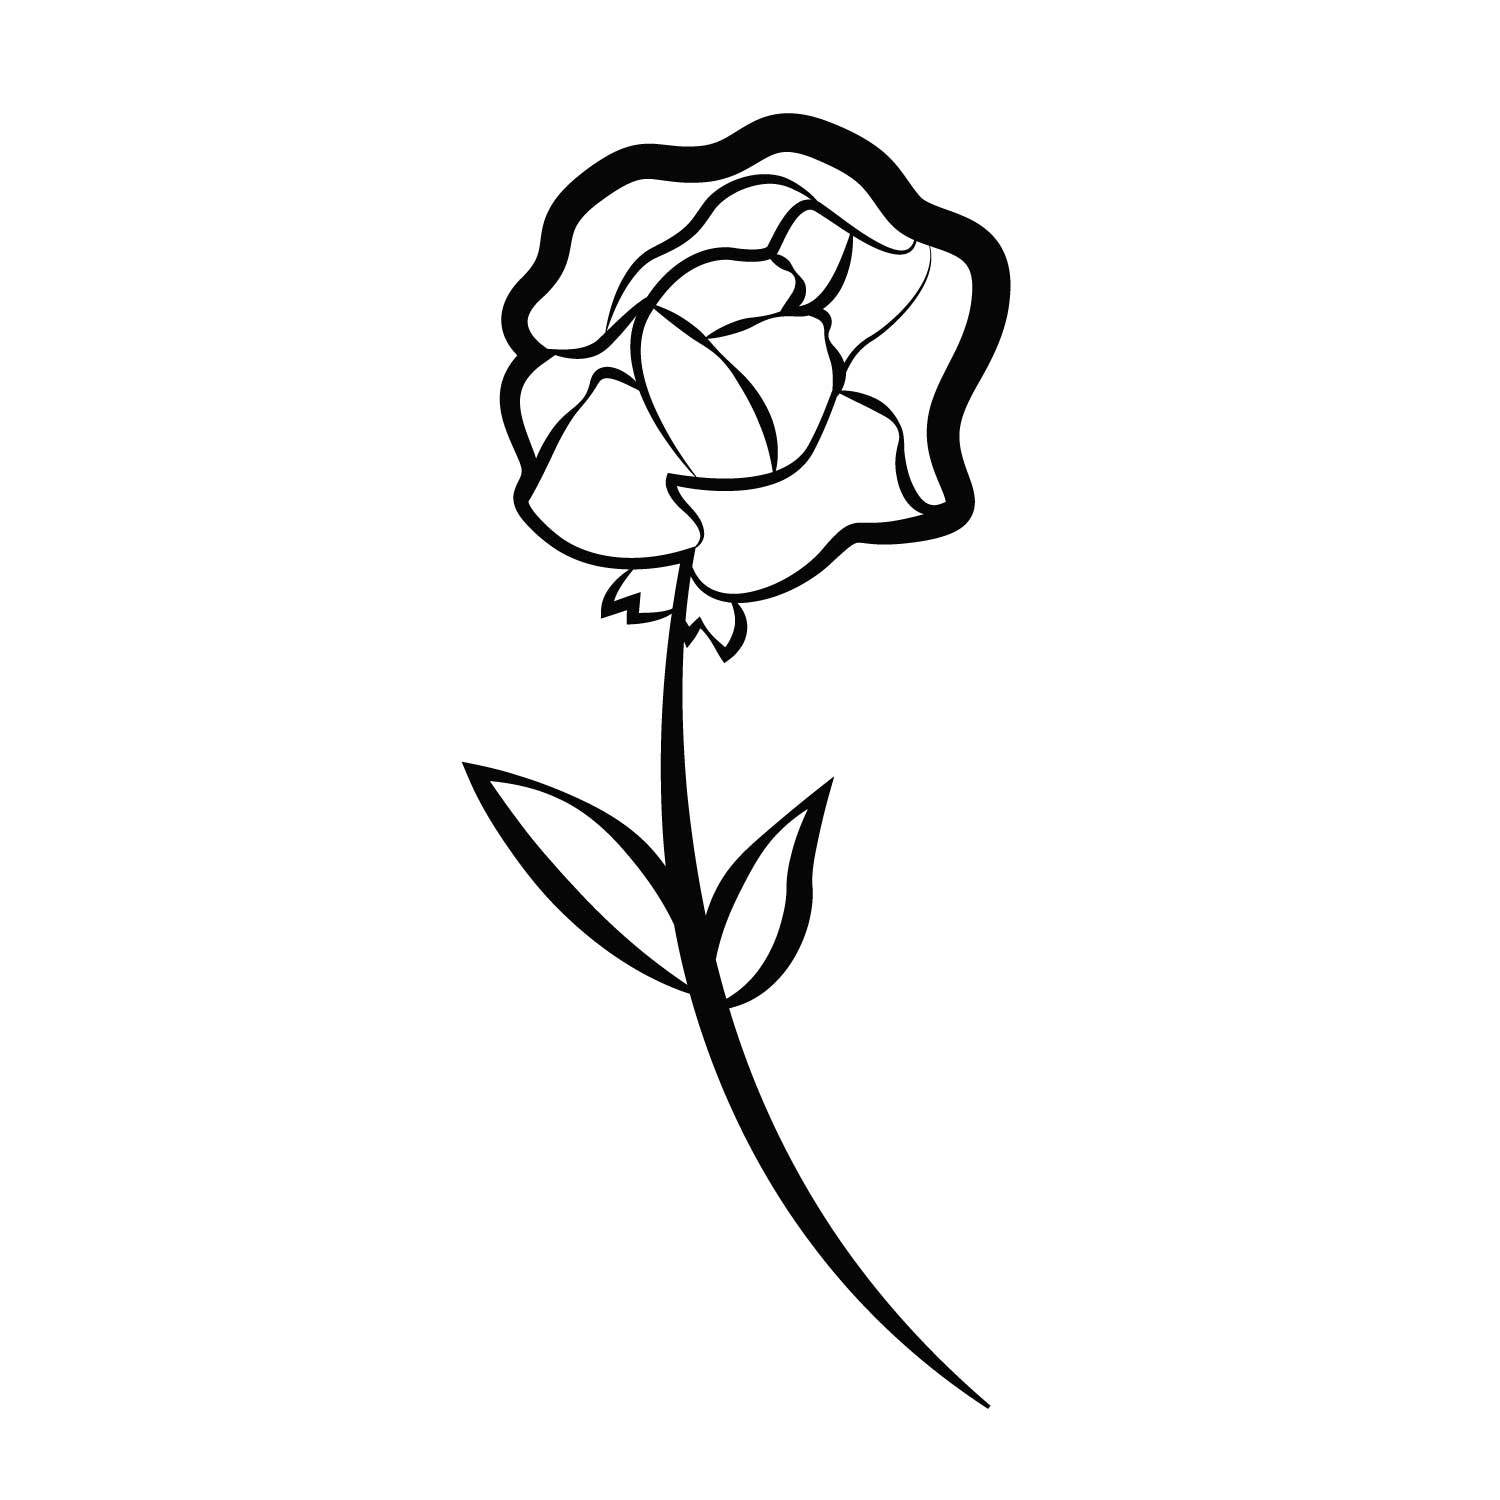 Flower Temporary Tatoo Design. Tags: Minimal, Black and White, Patterns, Flowers